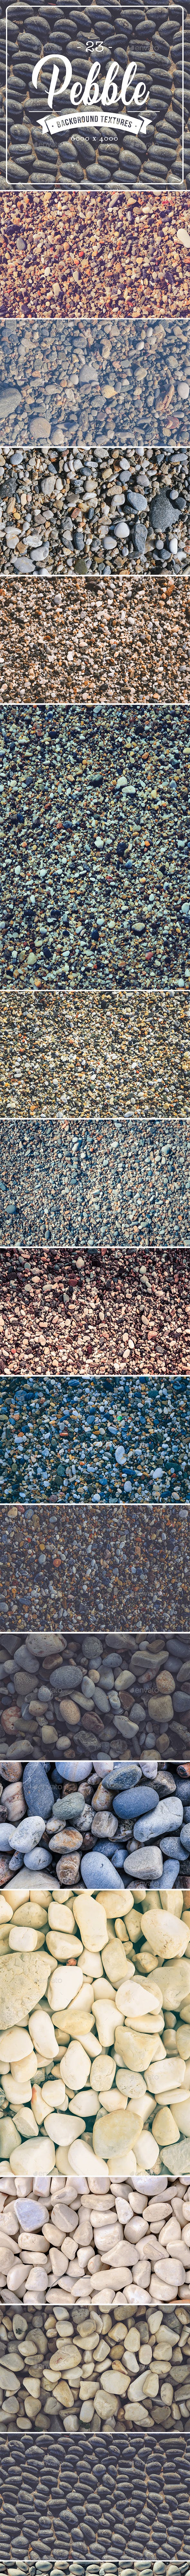 23 Pebble Background Textures - 3DOcean Item for Sale